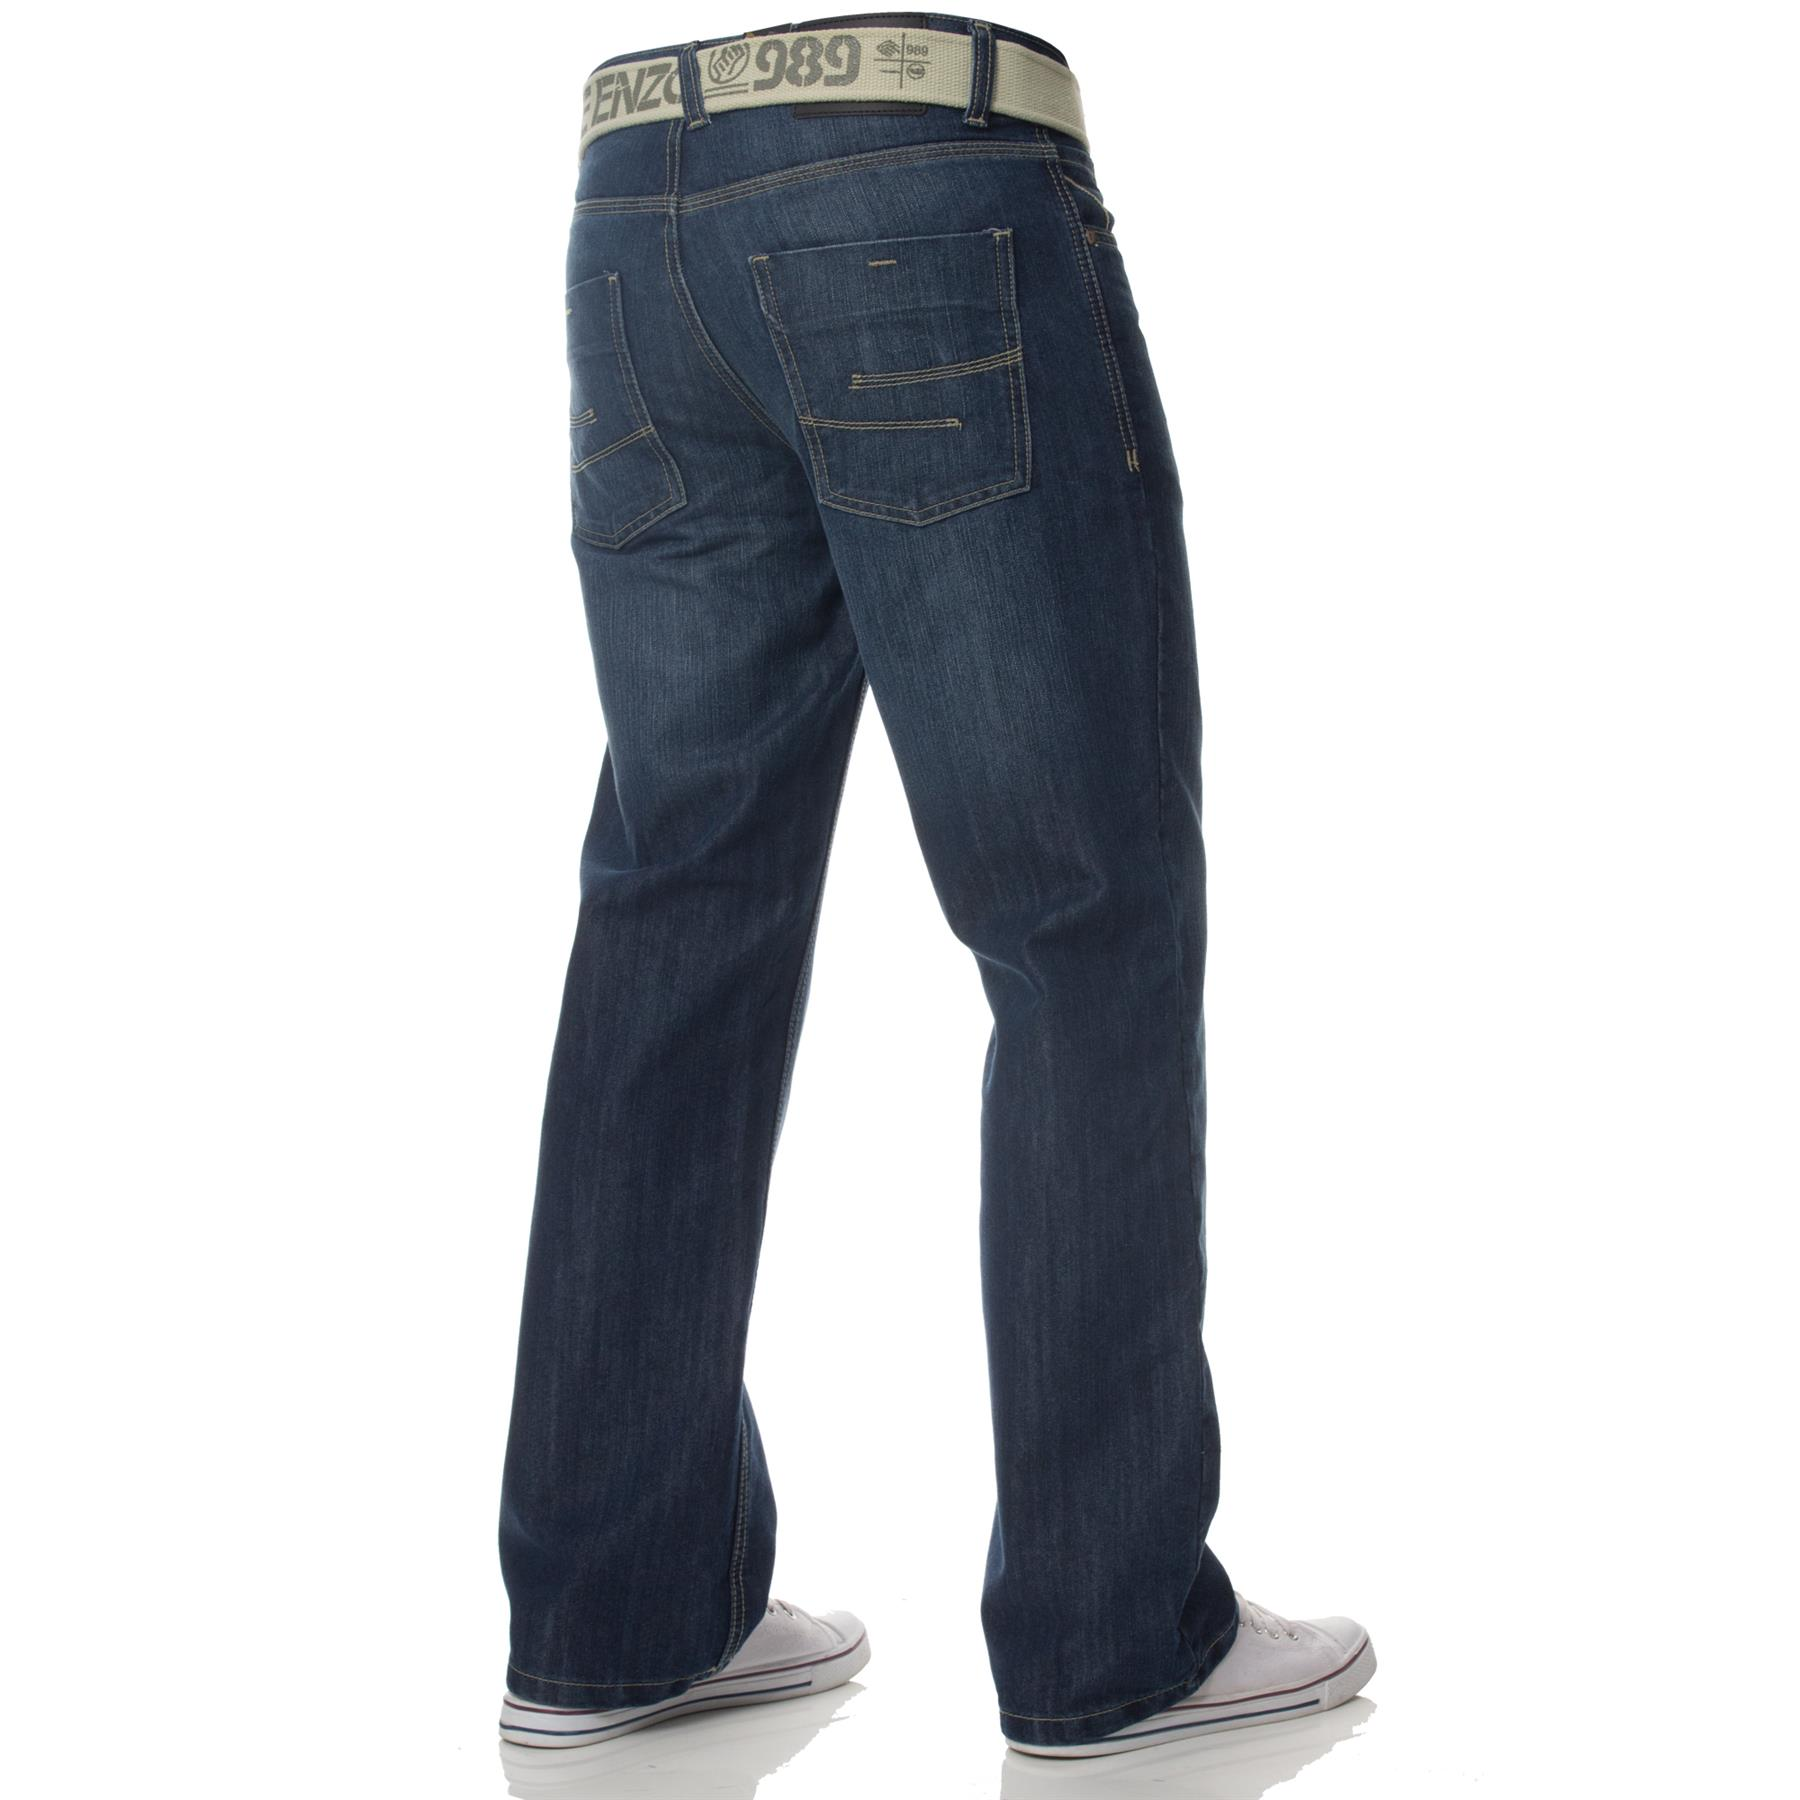 Enzo-Mens-Jeans-Big-Tall-Leg-King-Size-Denim-Pants-Chino-Trousers-Waist-44-034-60-034 miniature 11